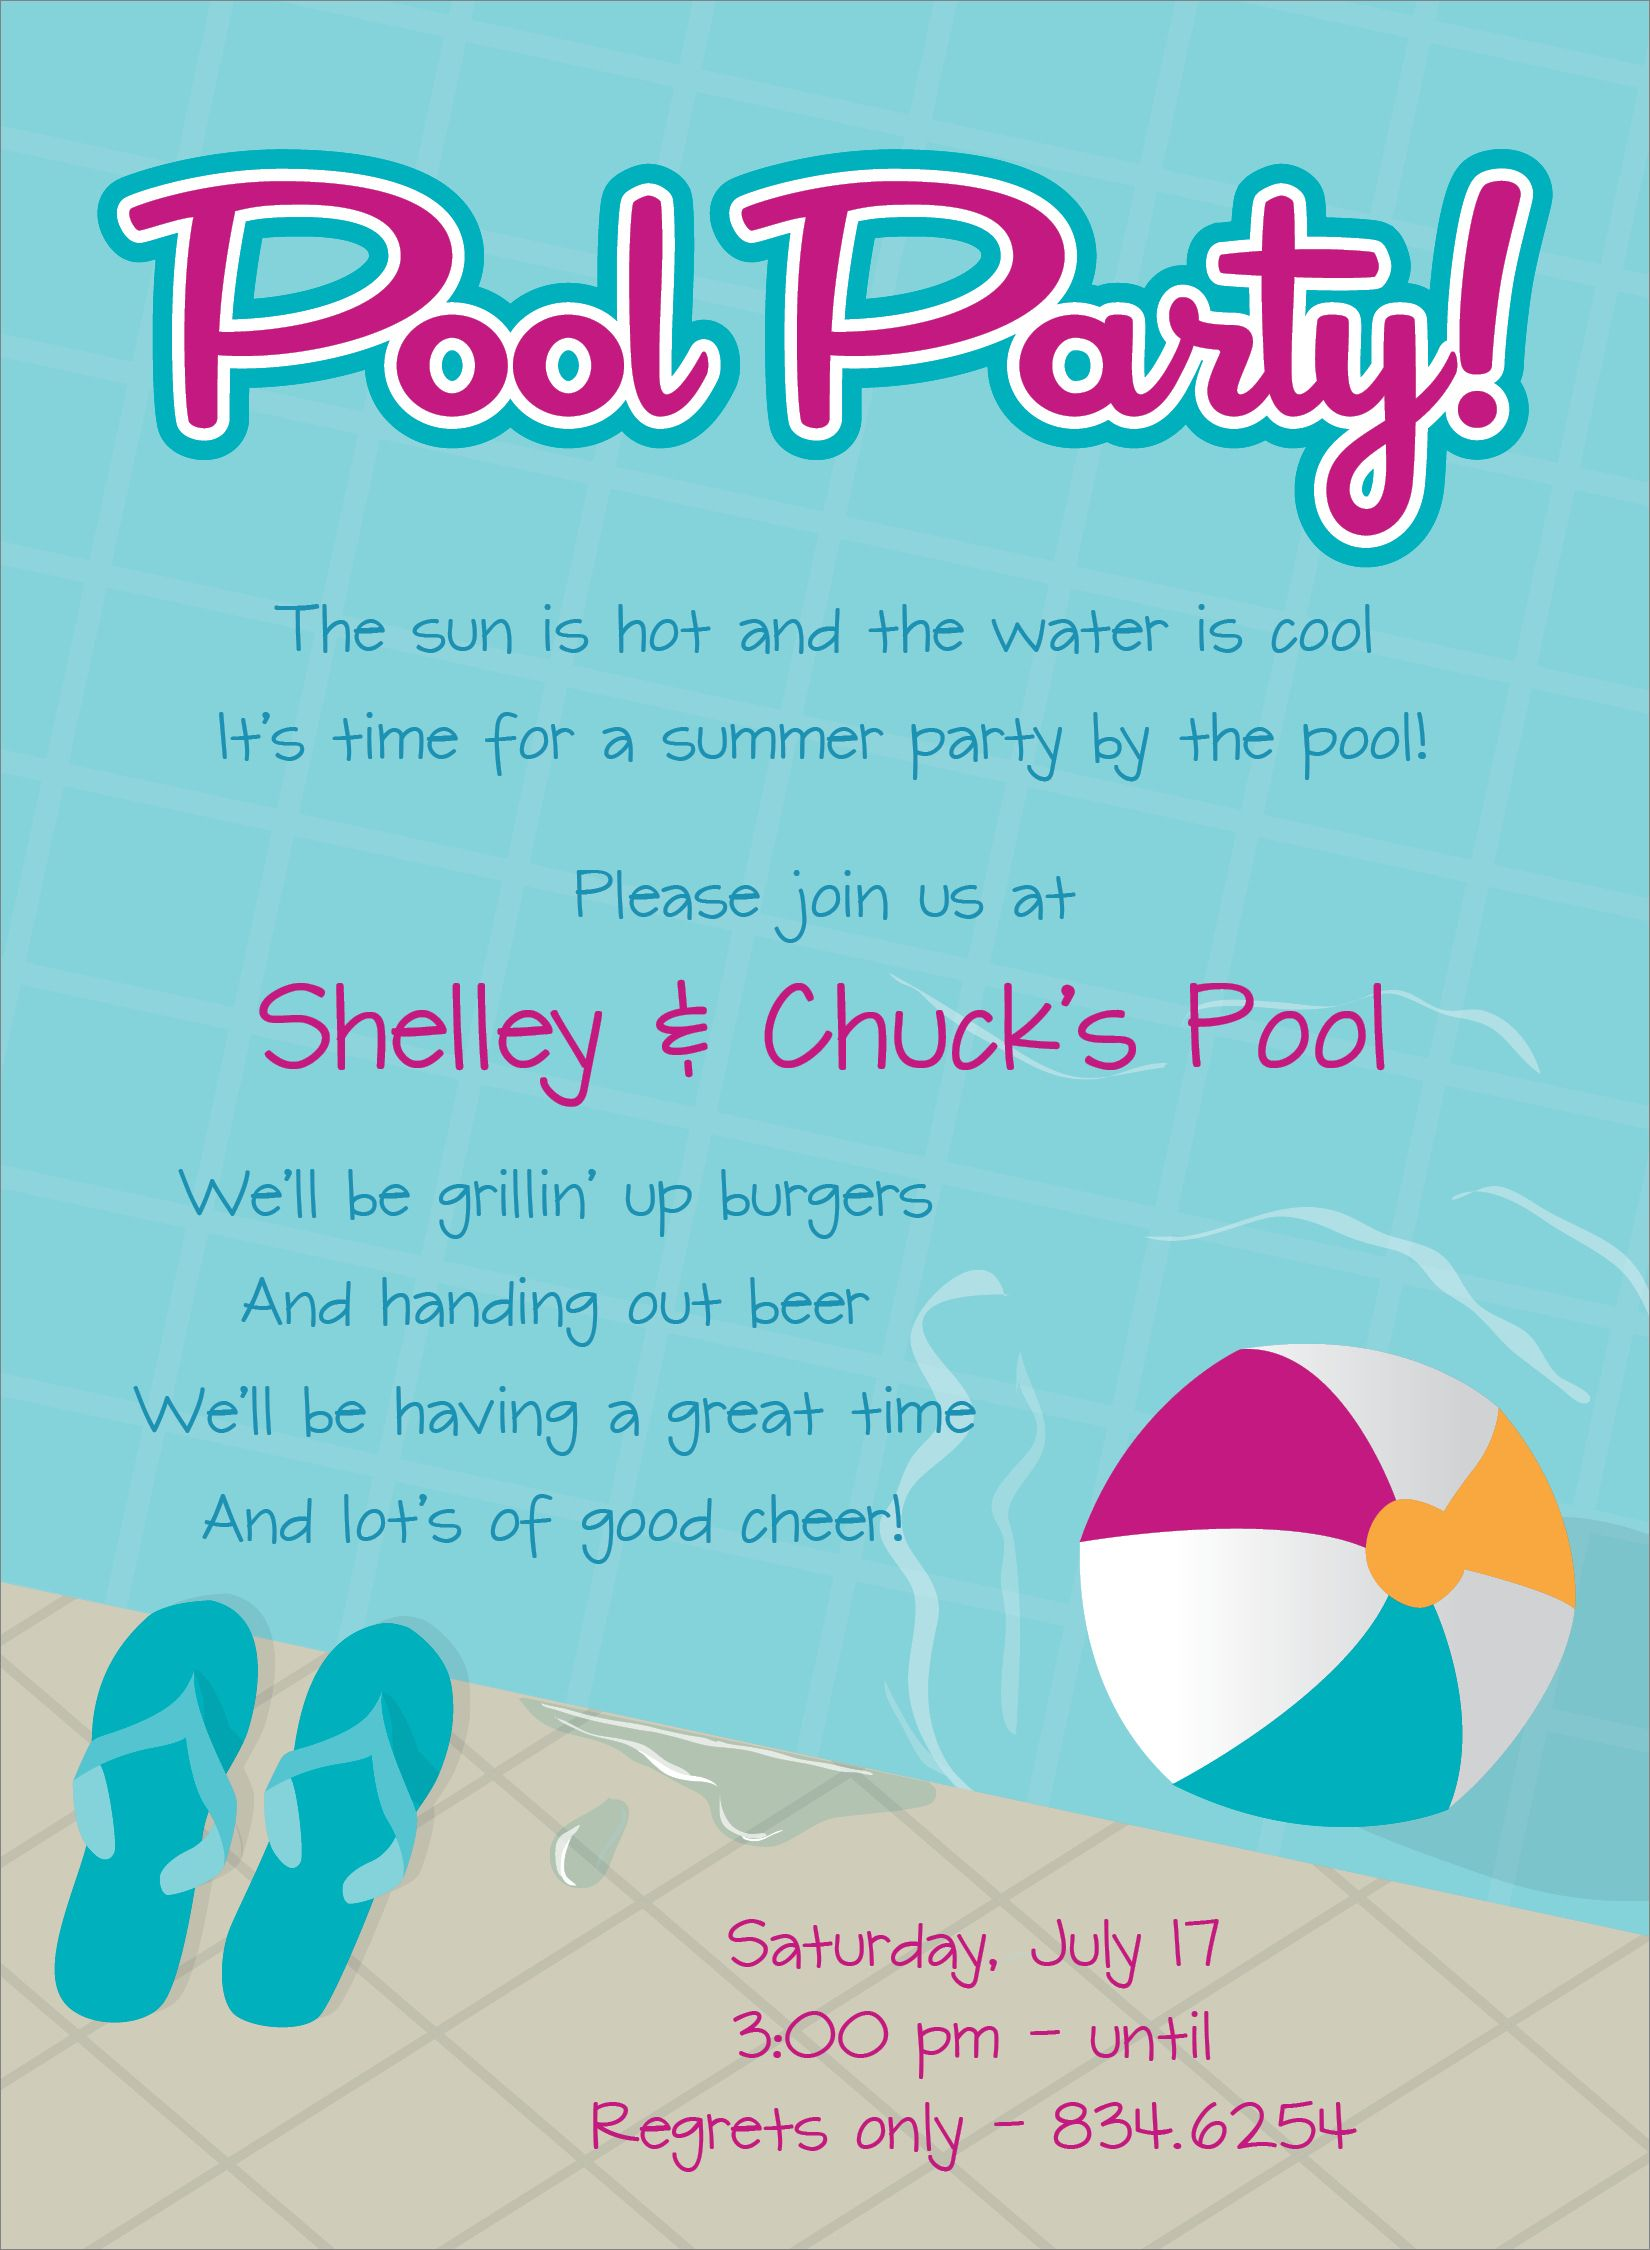 Pool Party Free Online Invitations | Swimming Pool Party! | Pinterest